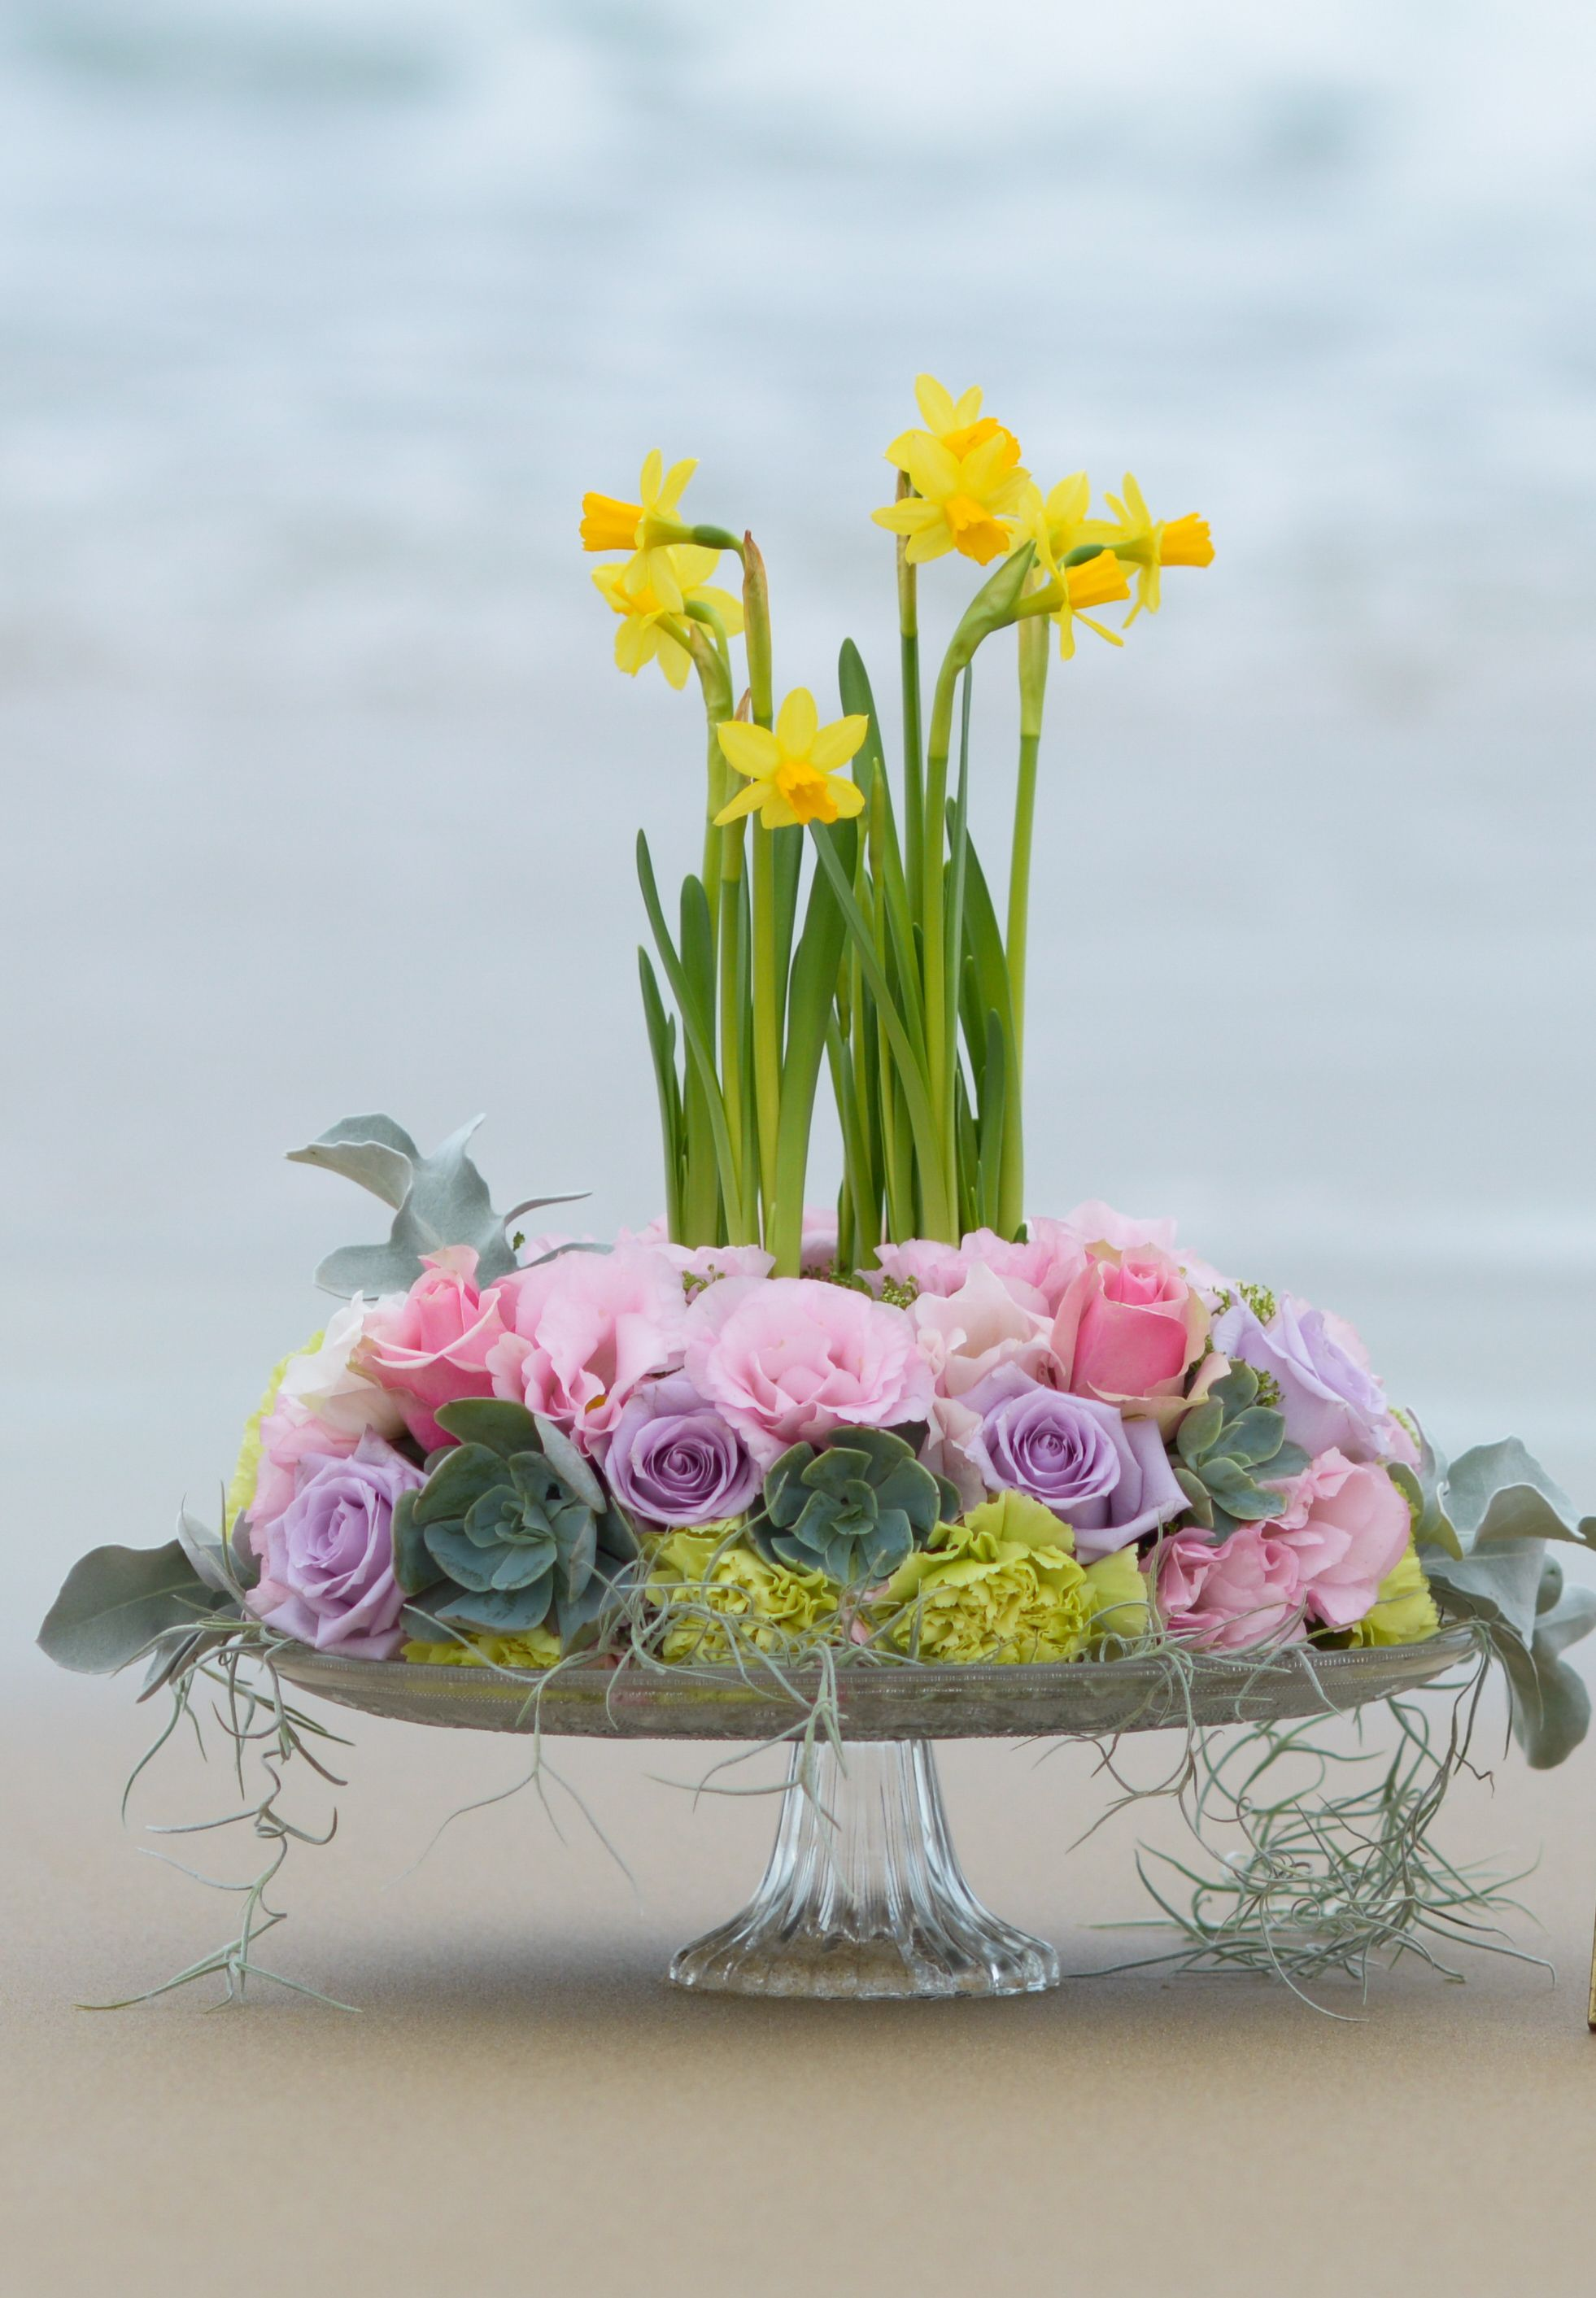 A special flower arrangement for Mother's day